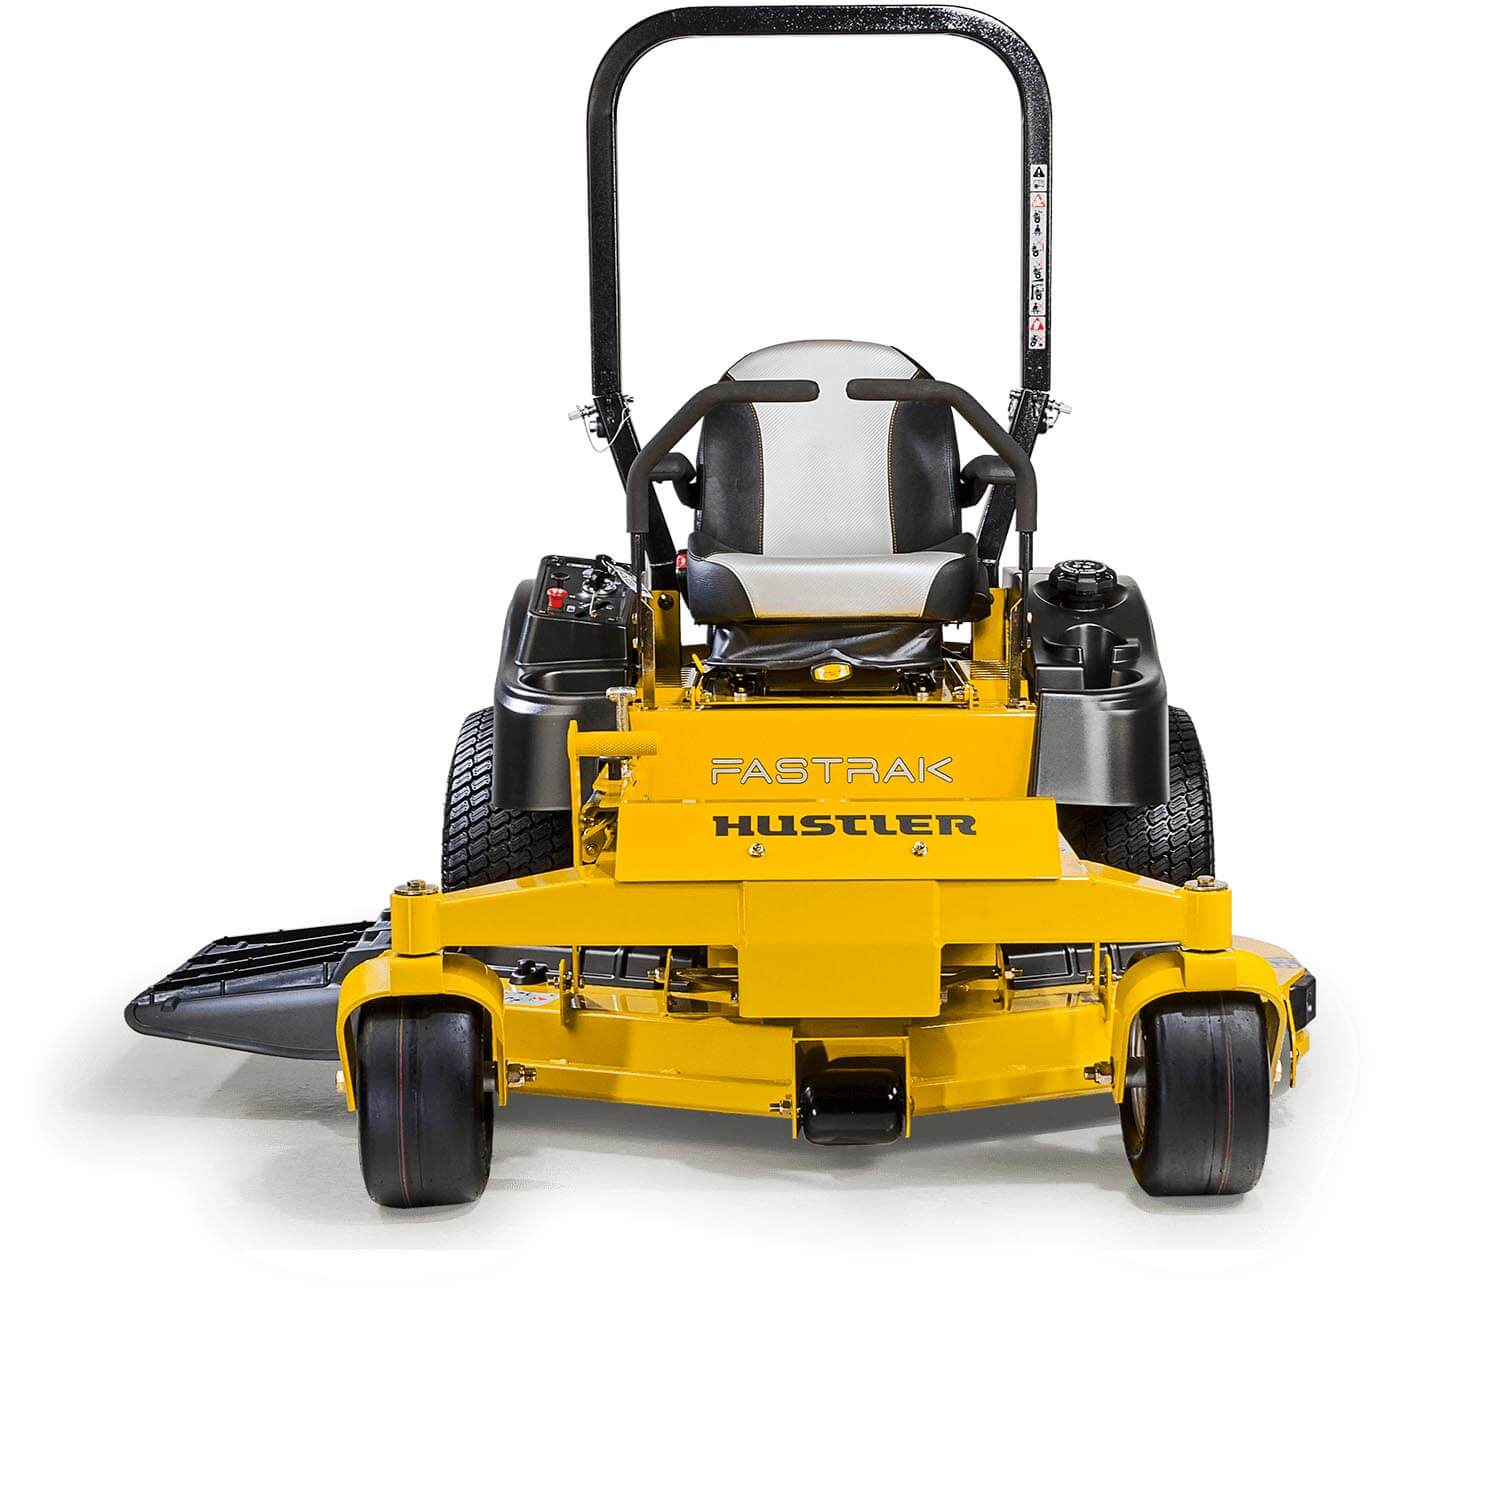 Image of the front of a yellow riding mower